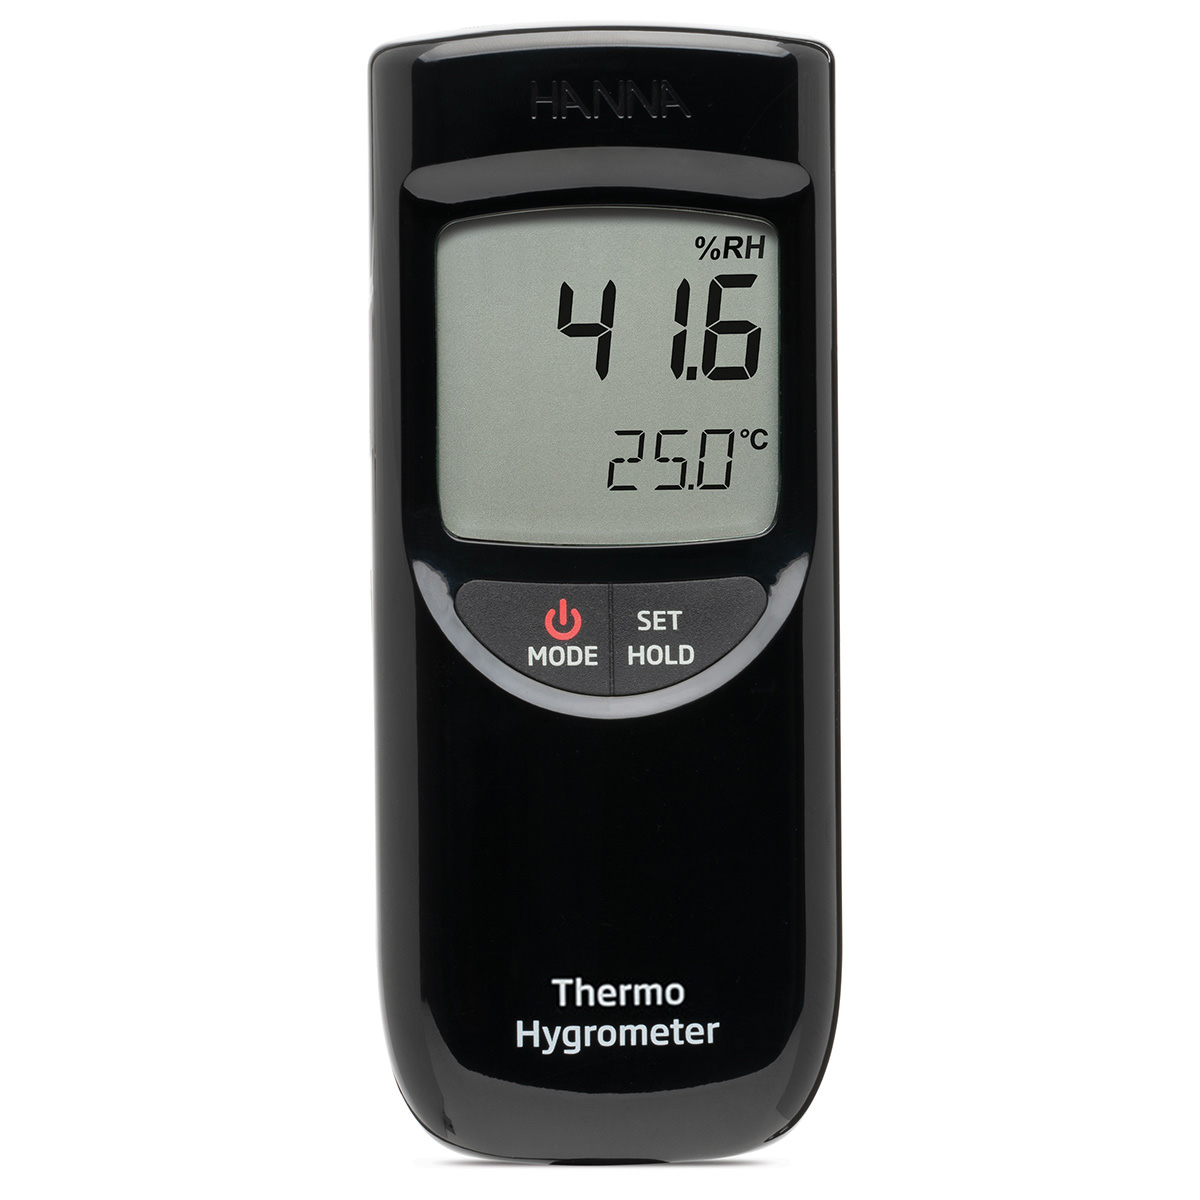 Portable Thermohygrometer - HI9564